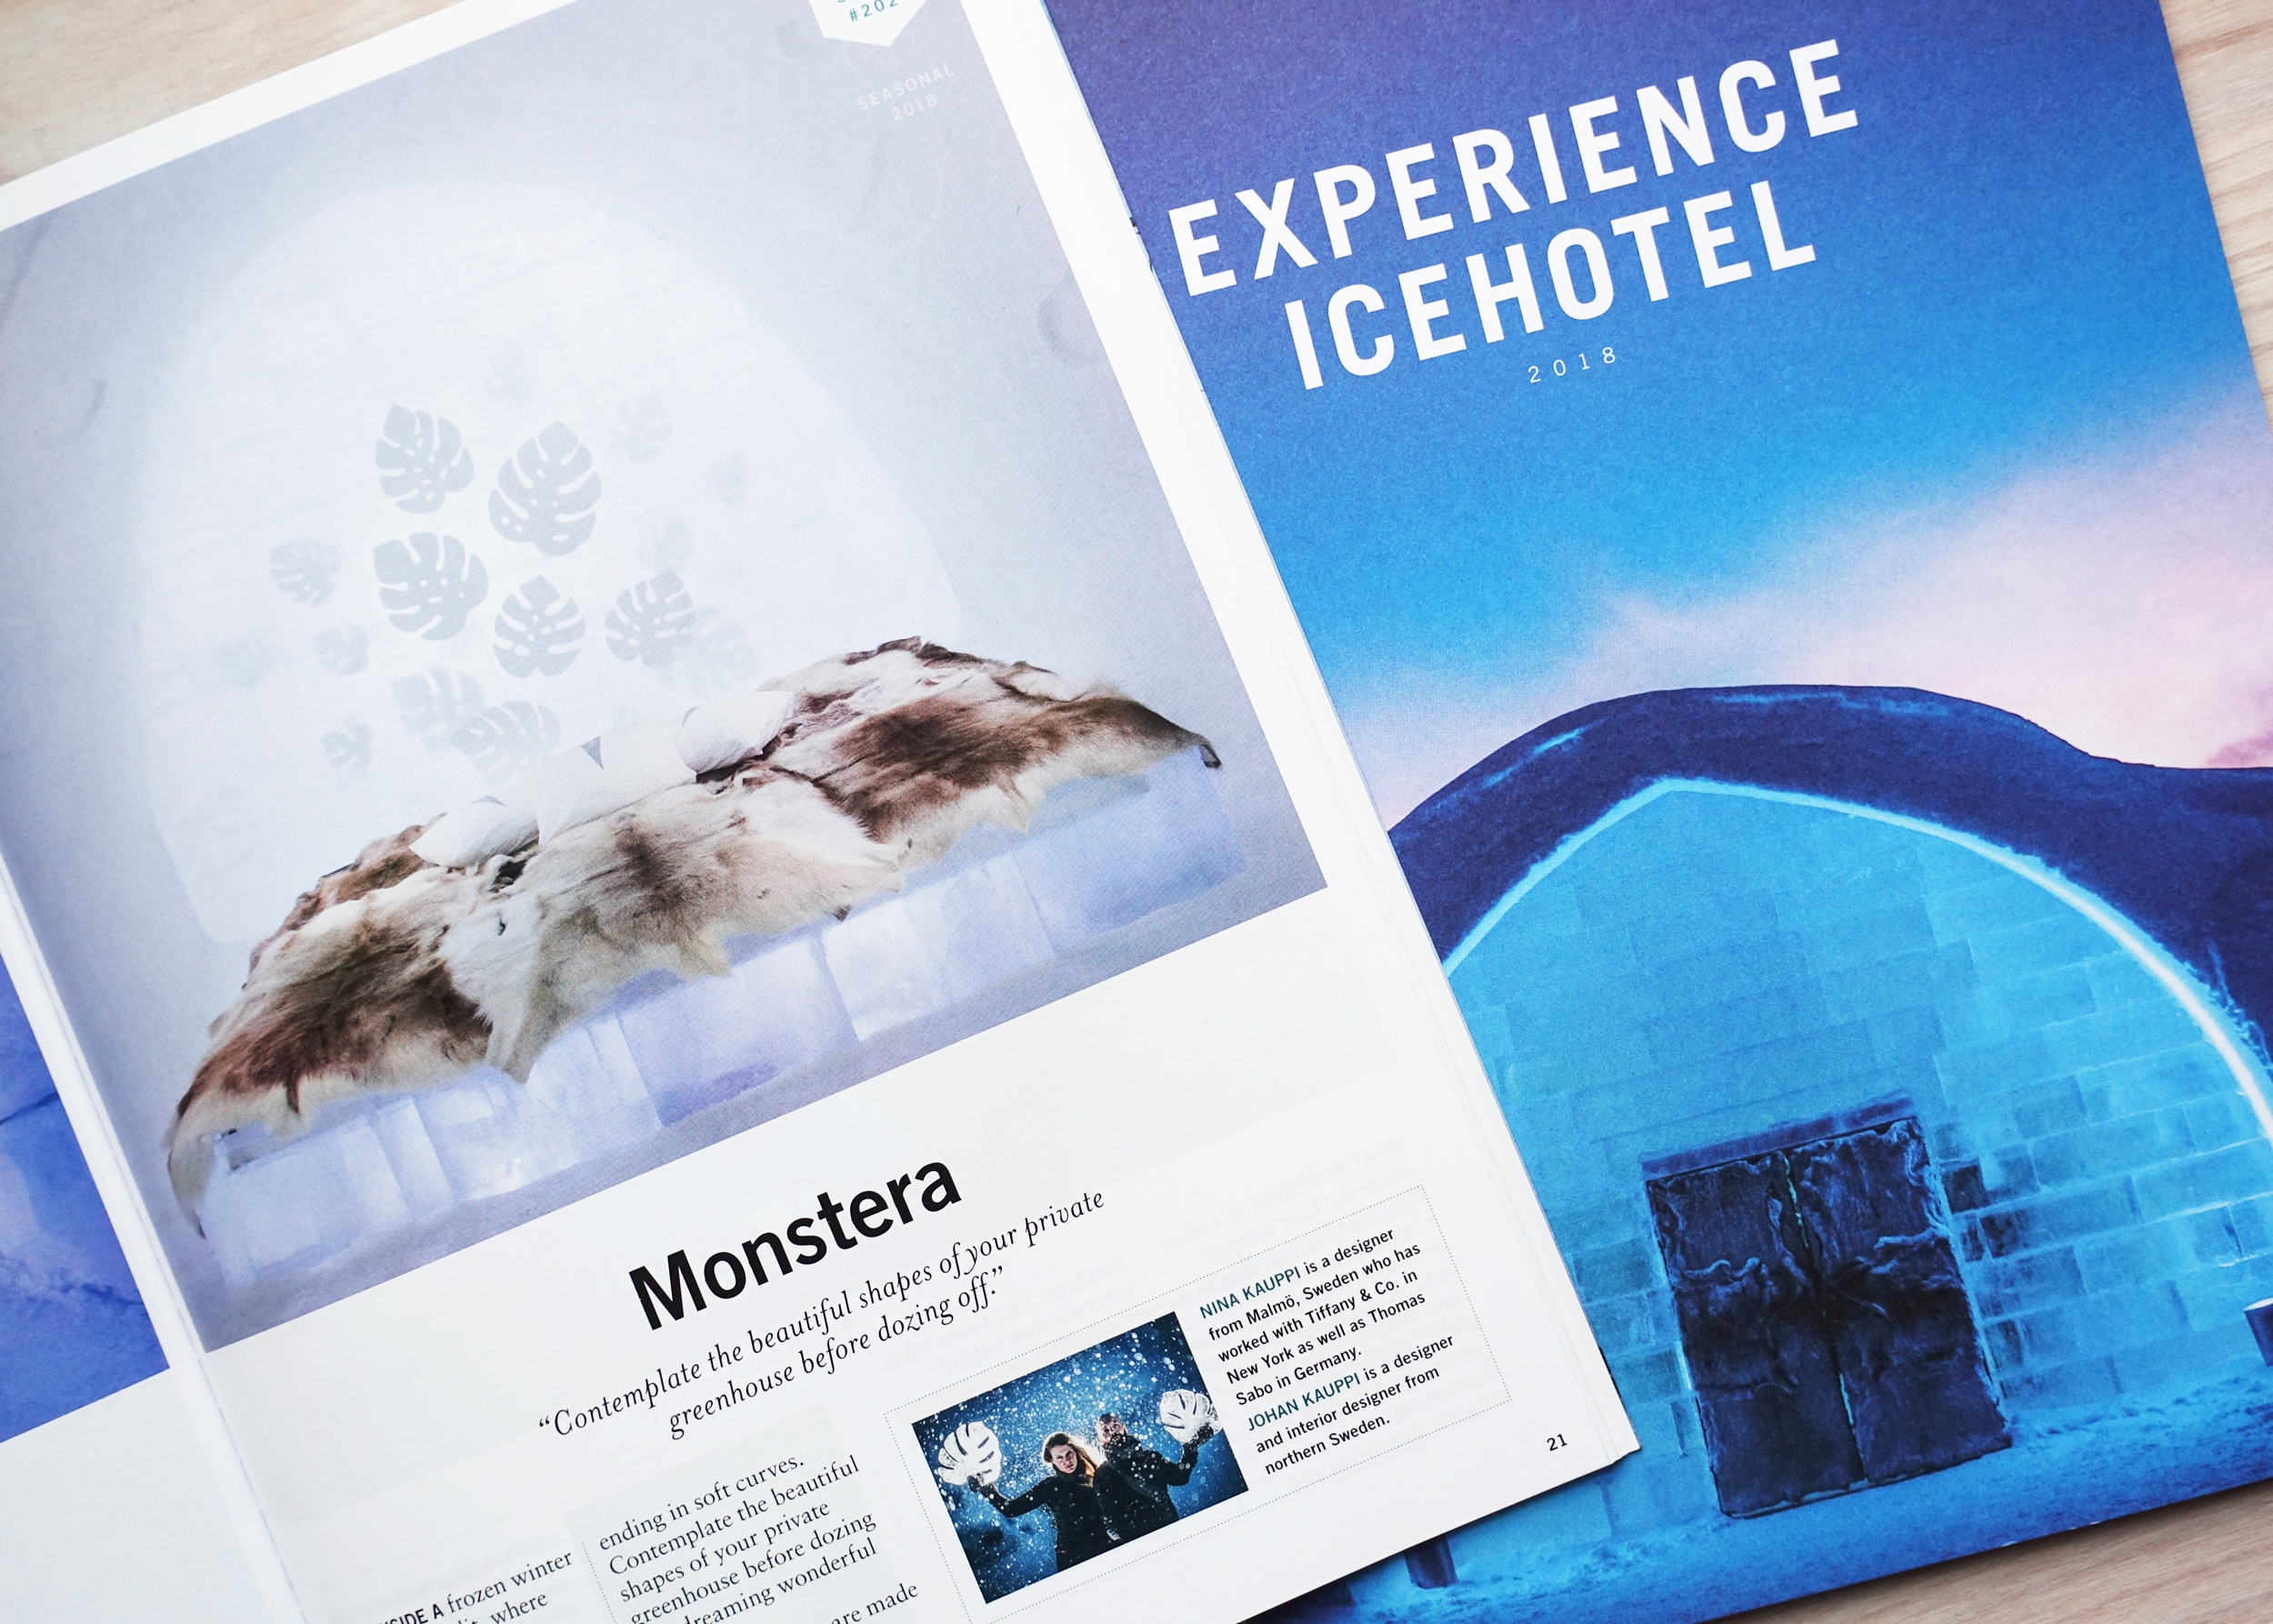 ICEHOTEL_Catalogue_2018_Blue Houses_Kauppi & Kauppi.jpg